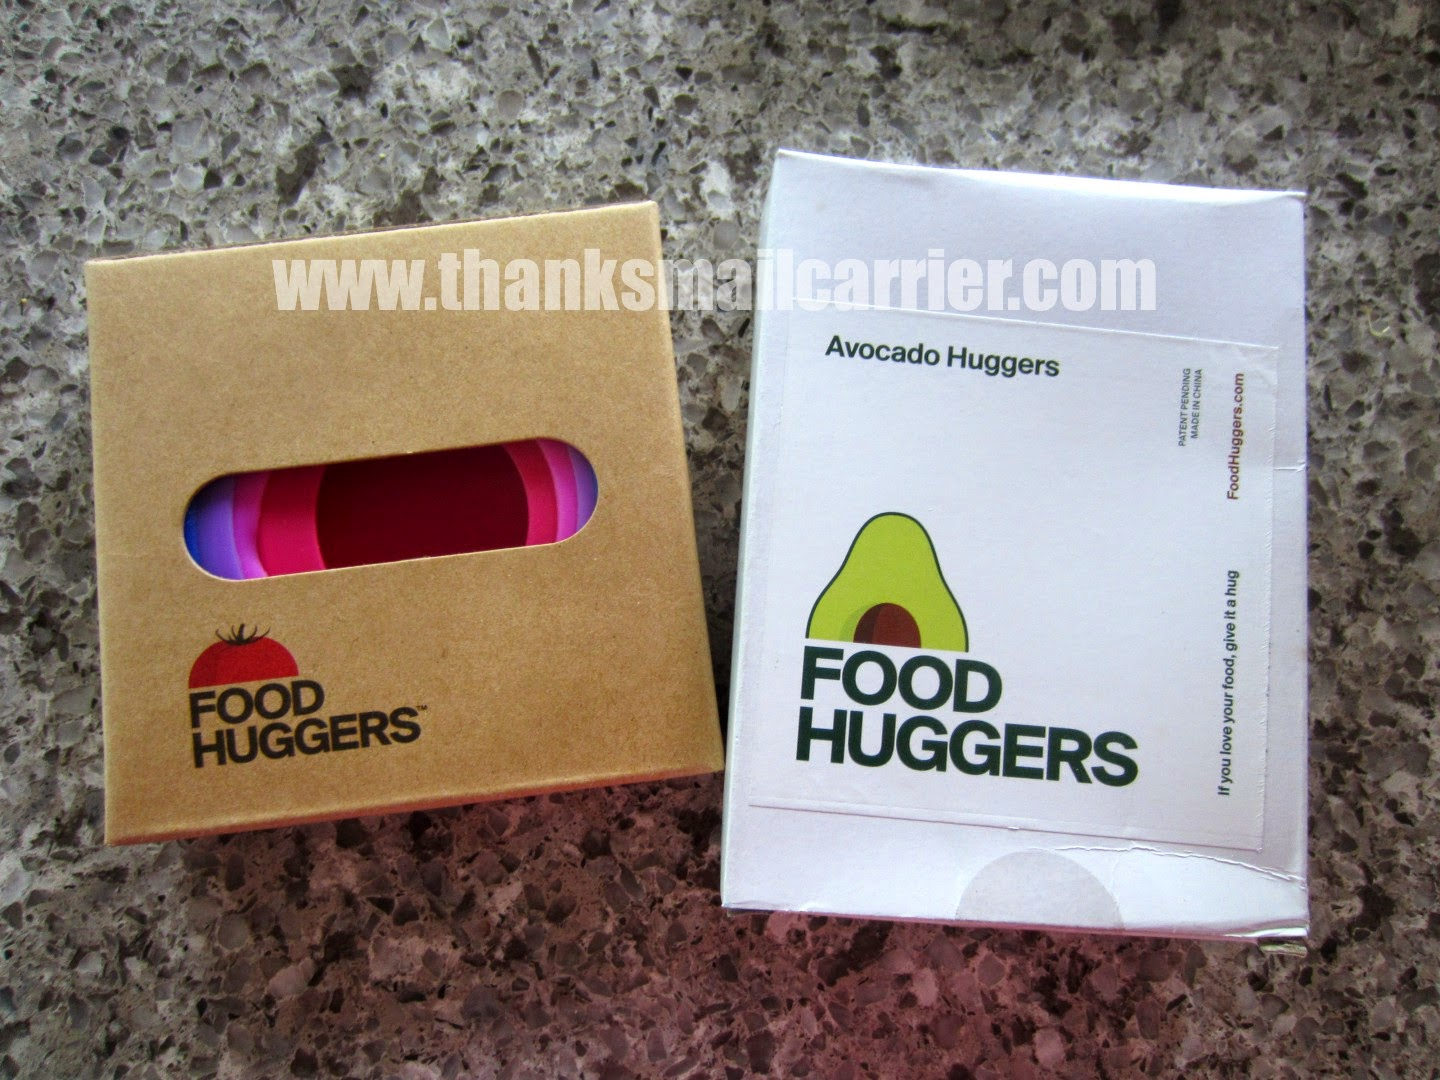 Food Huggers food savers